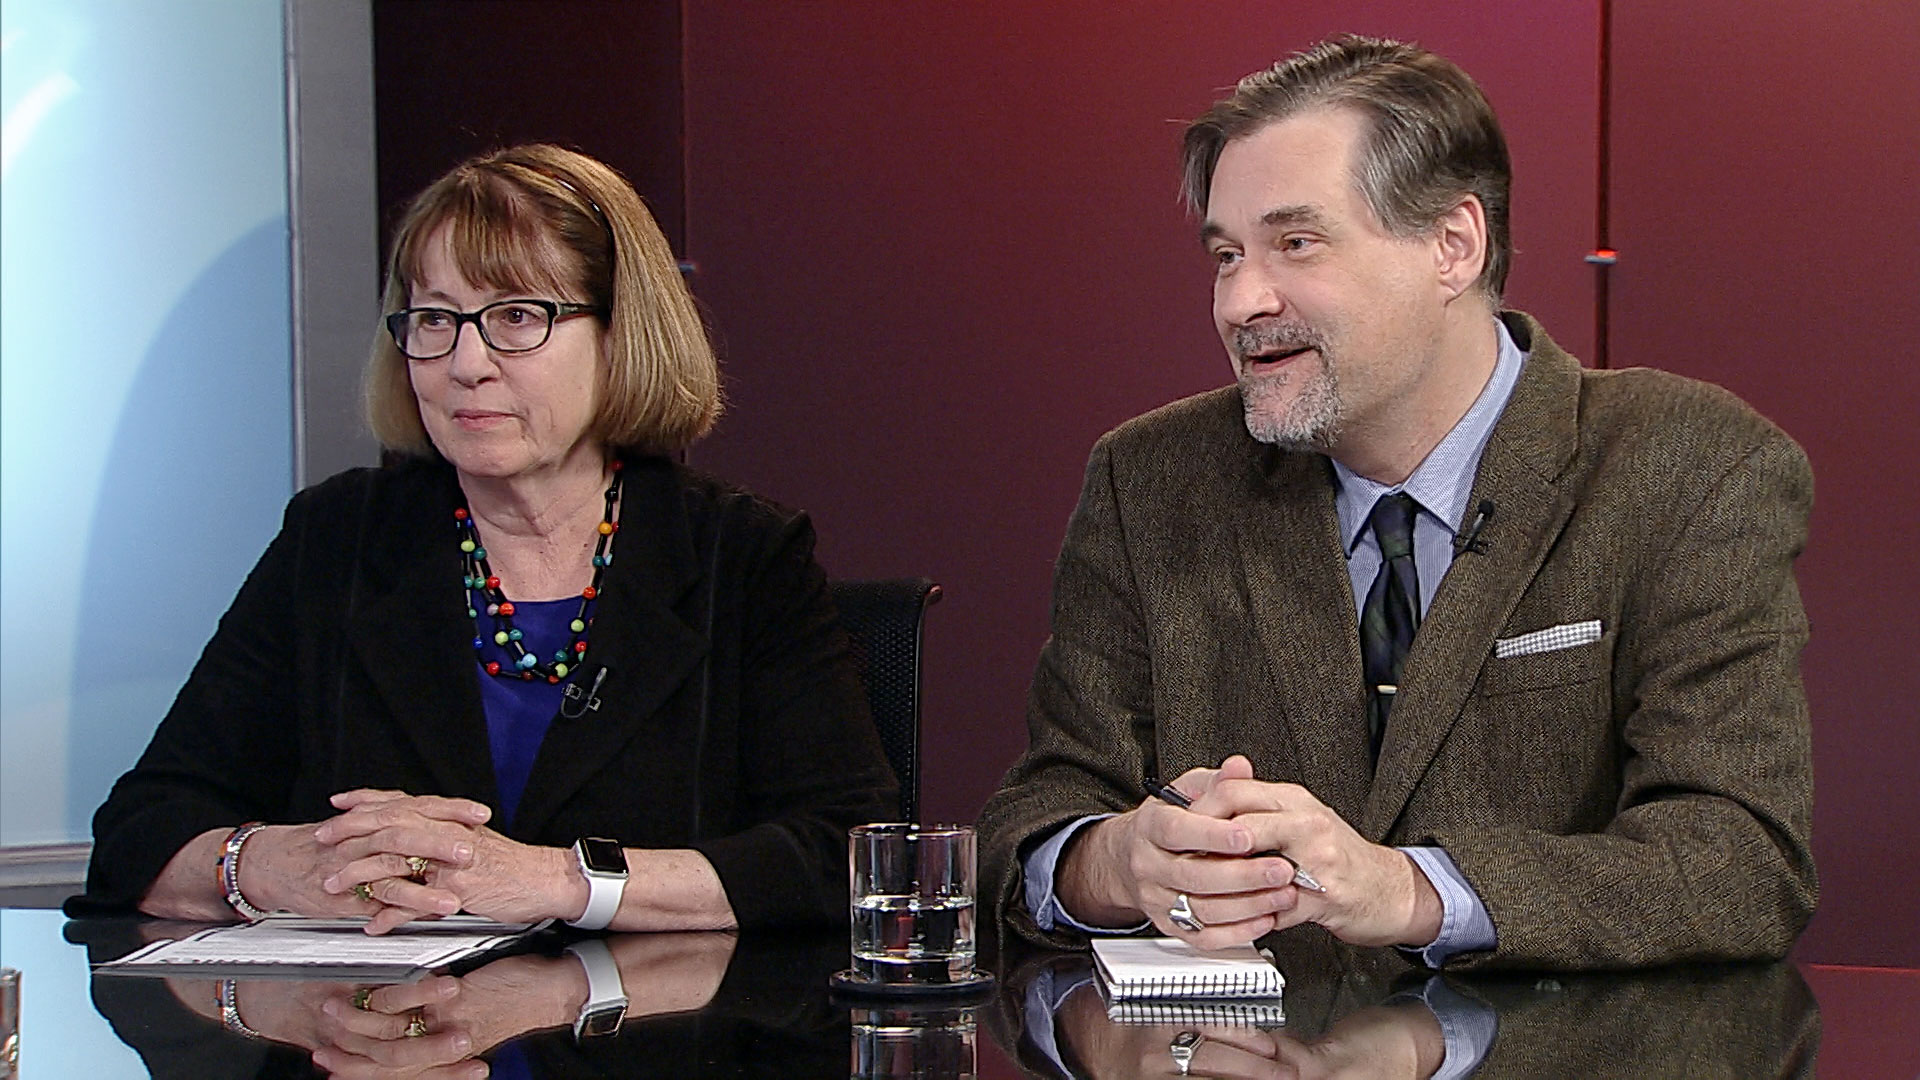 University of Arizona School of Journalism assistant professor Susan Swanberg and Tucson Sentinel editor and publisher Dylan Smith in the Arizona 360 studio on April 4, 2019.